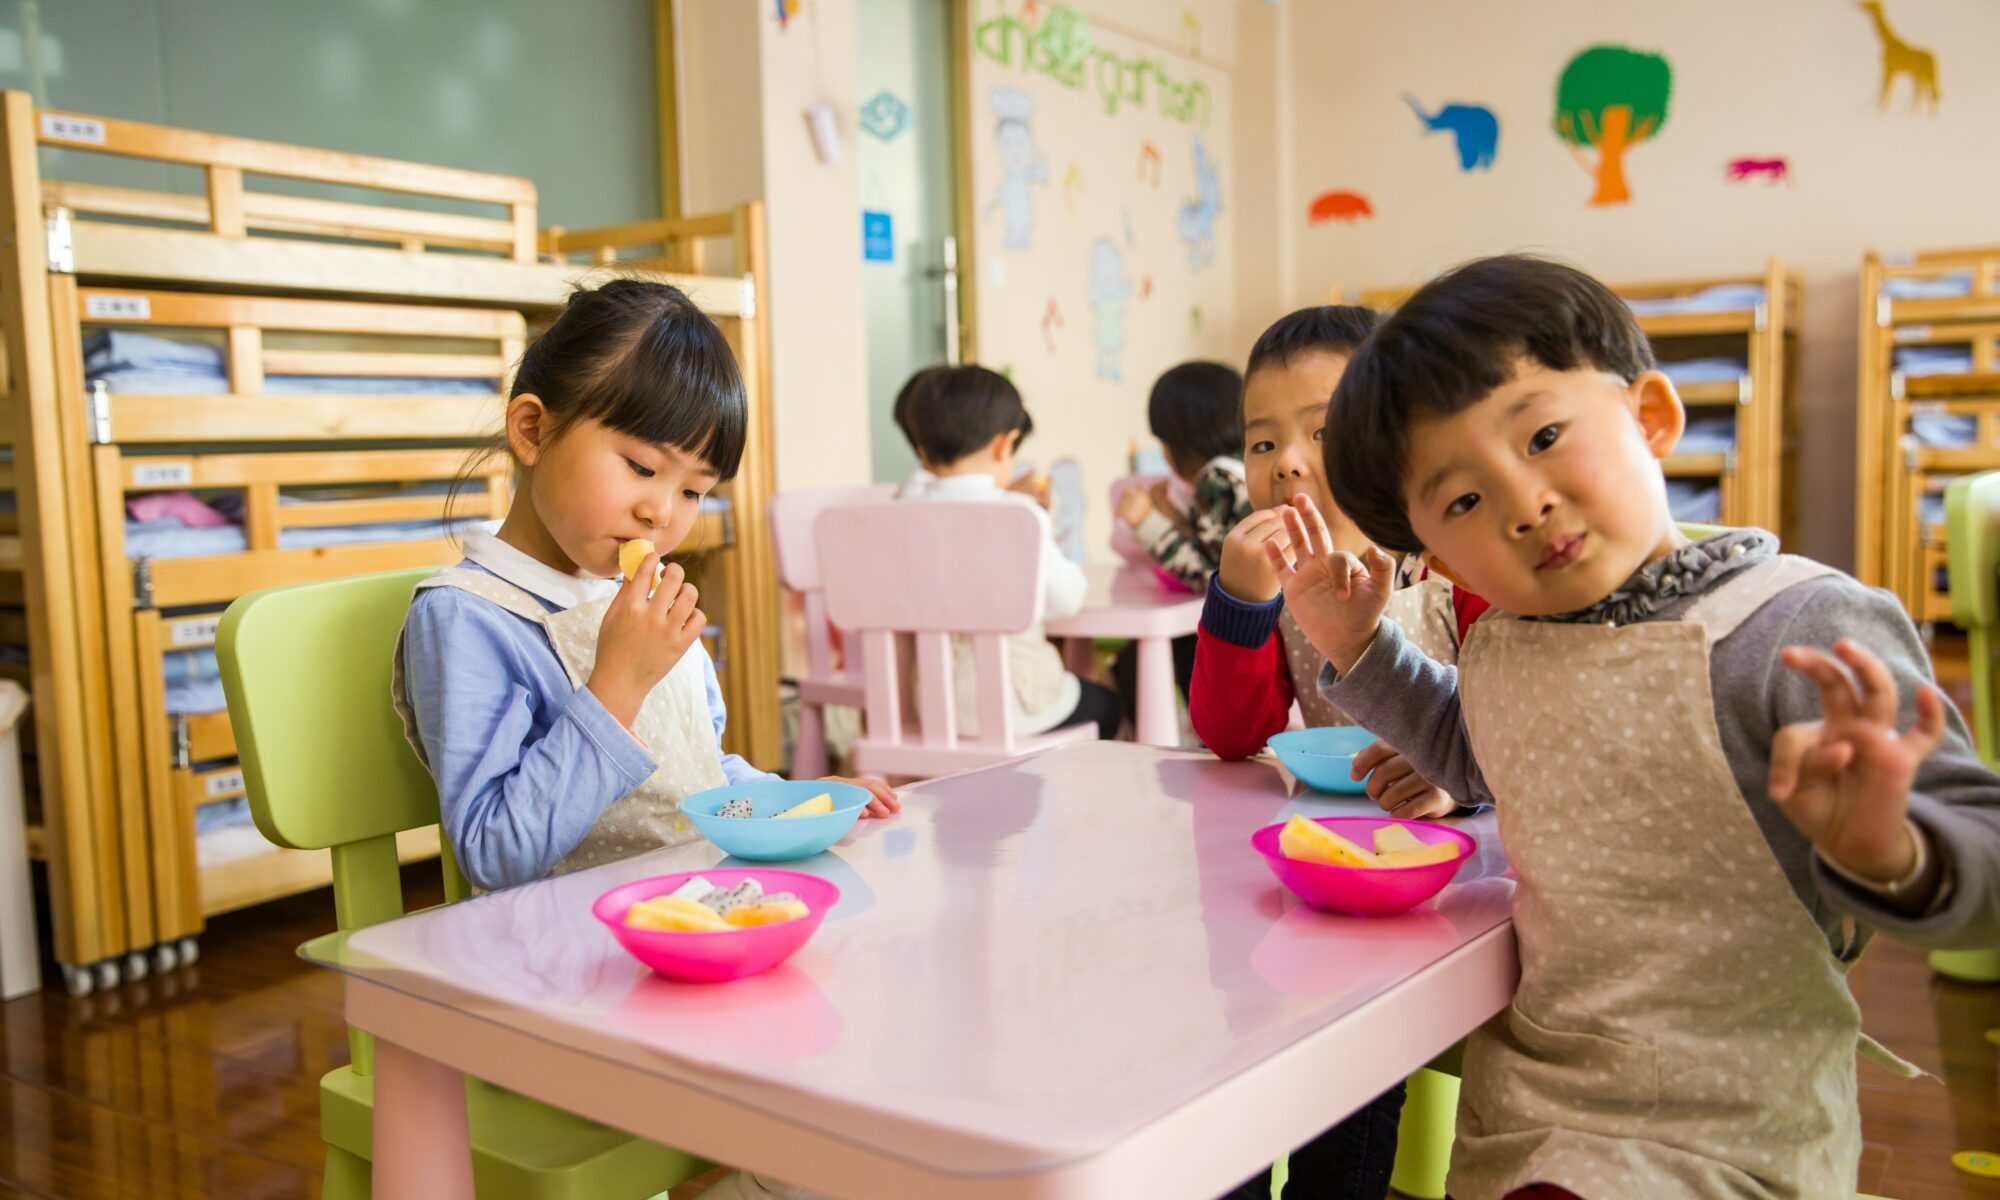 children sitting together at a table in a childcare facility